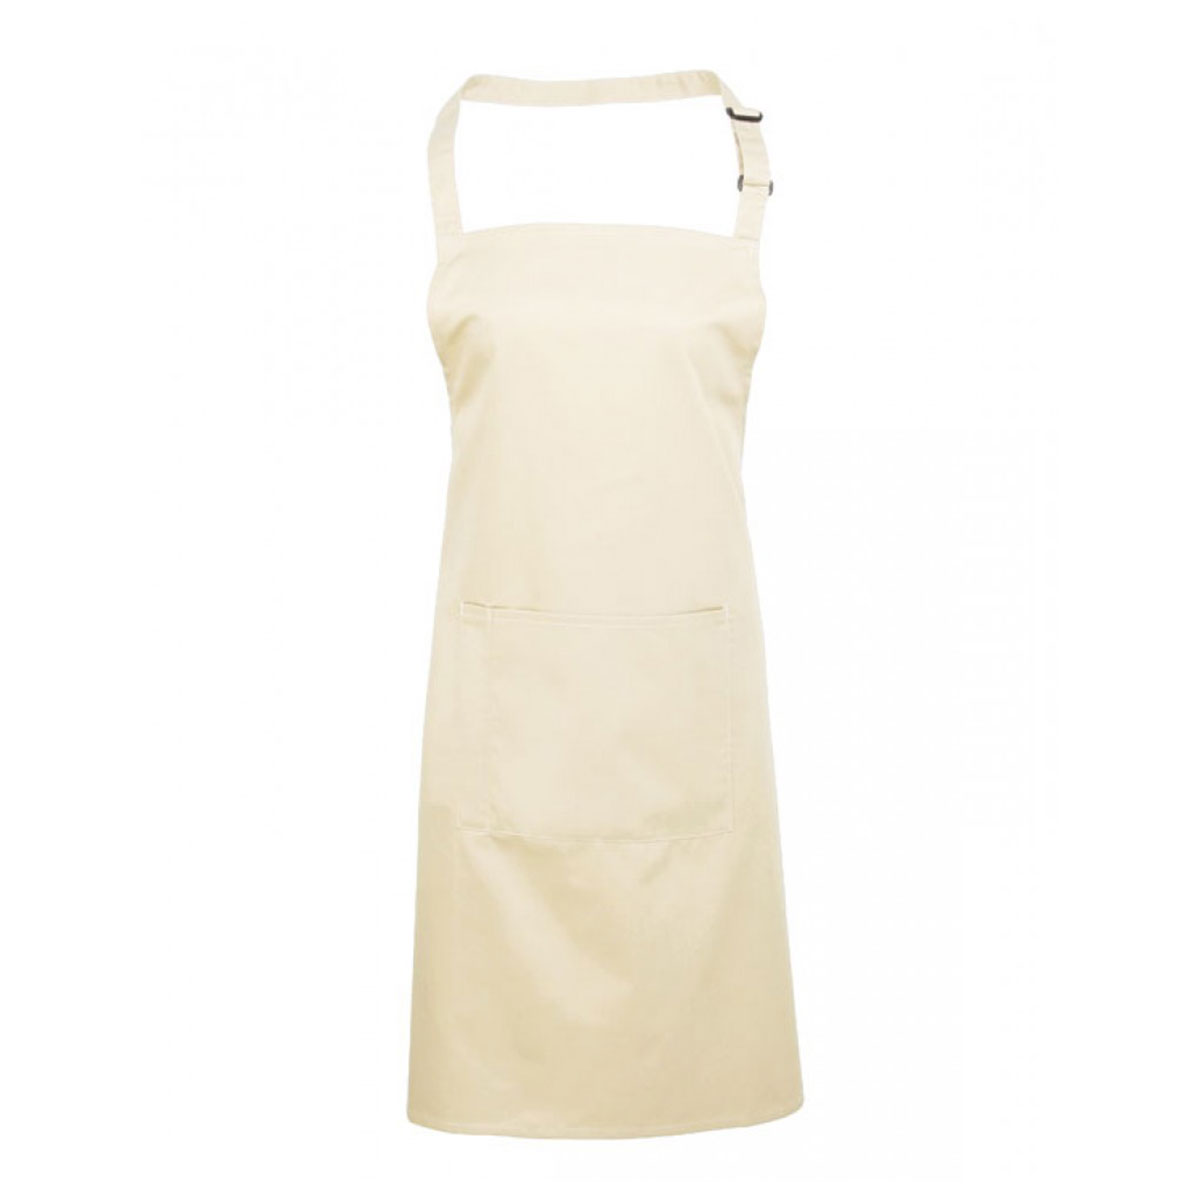 Colours Bib Apron with Pocket - pr154_natural